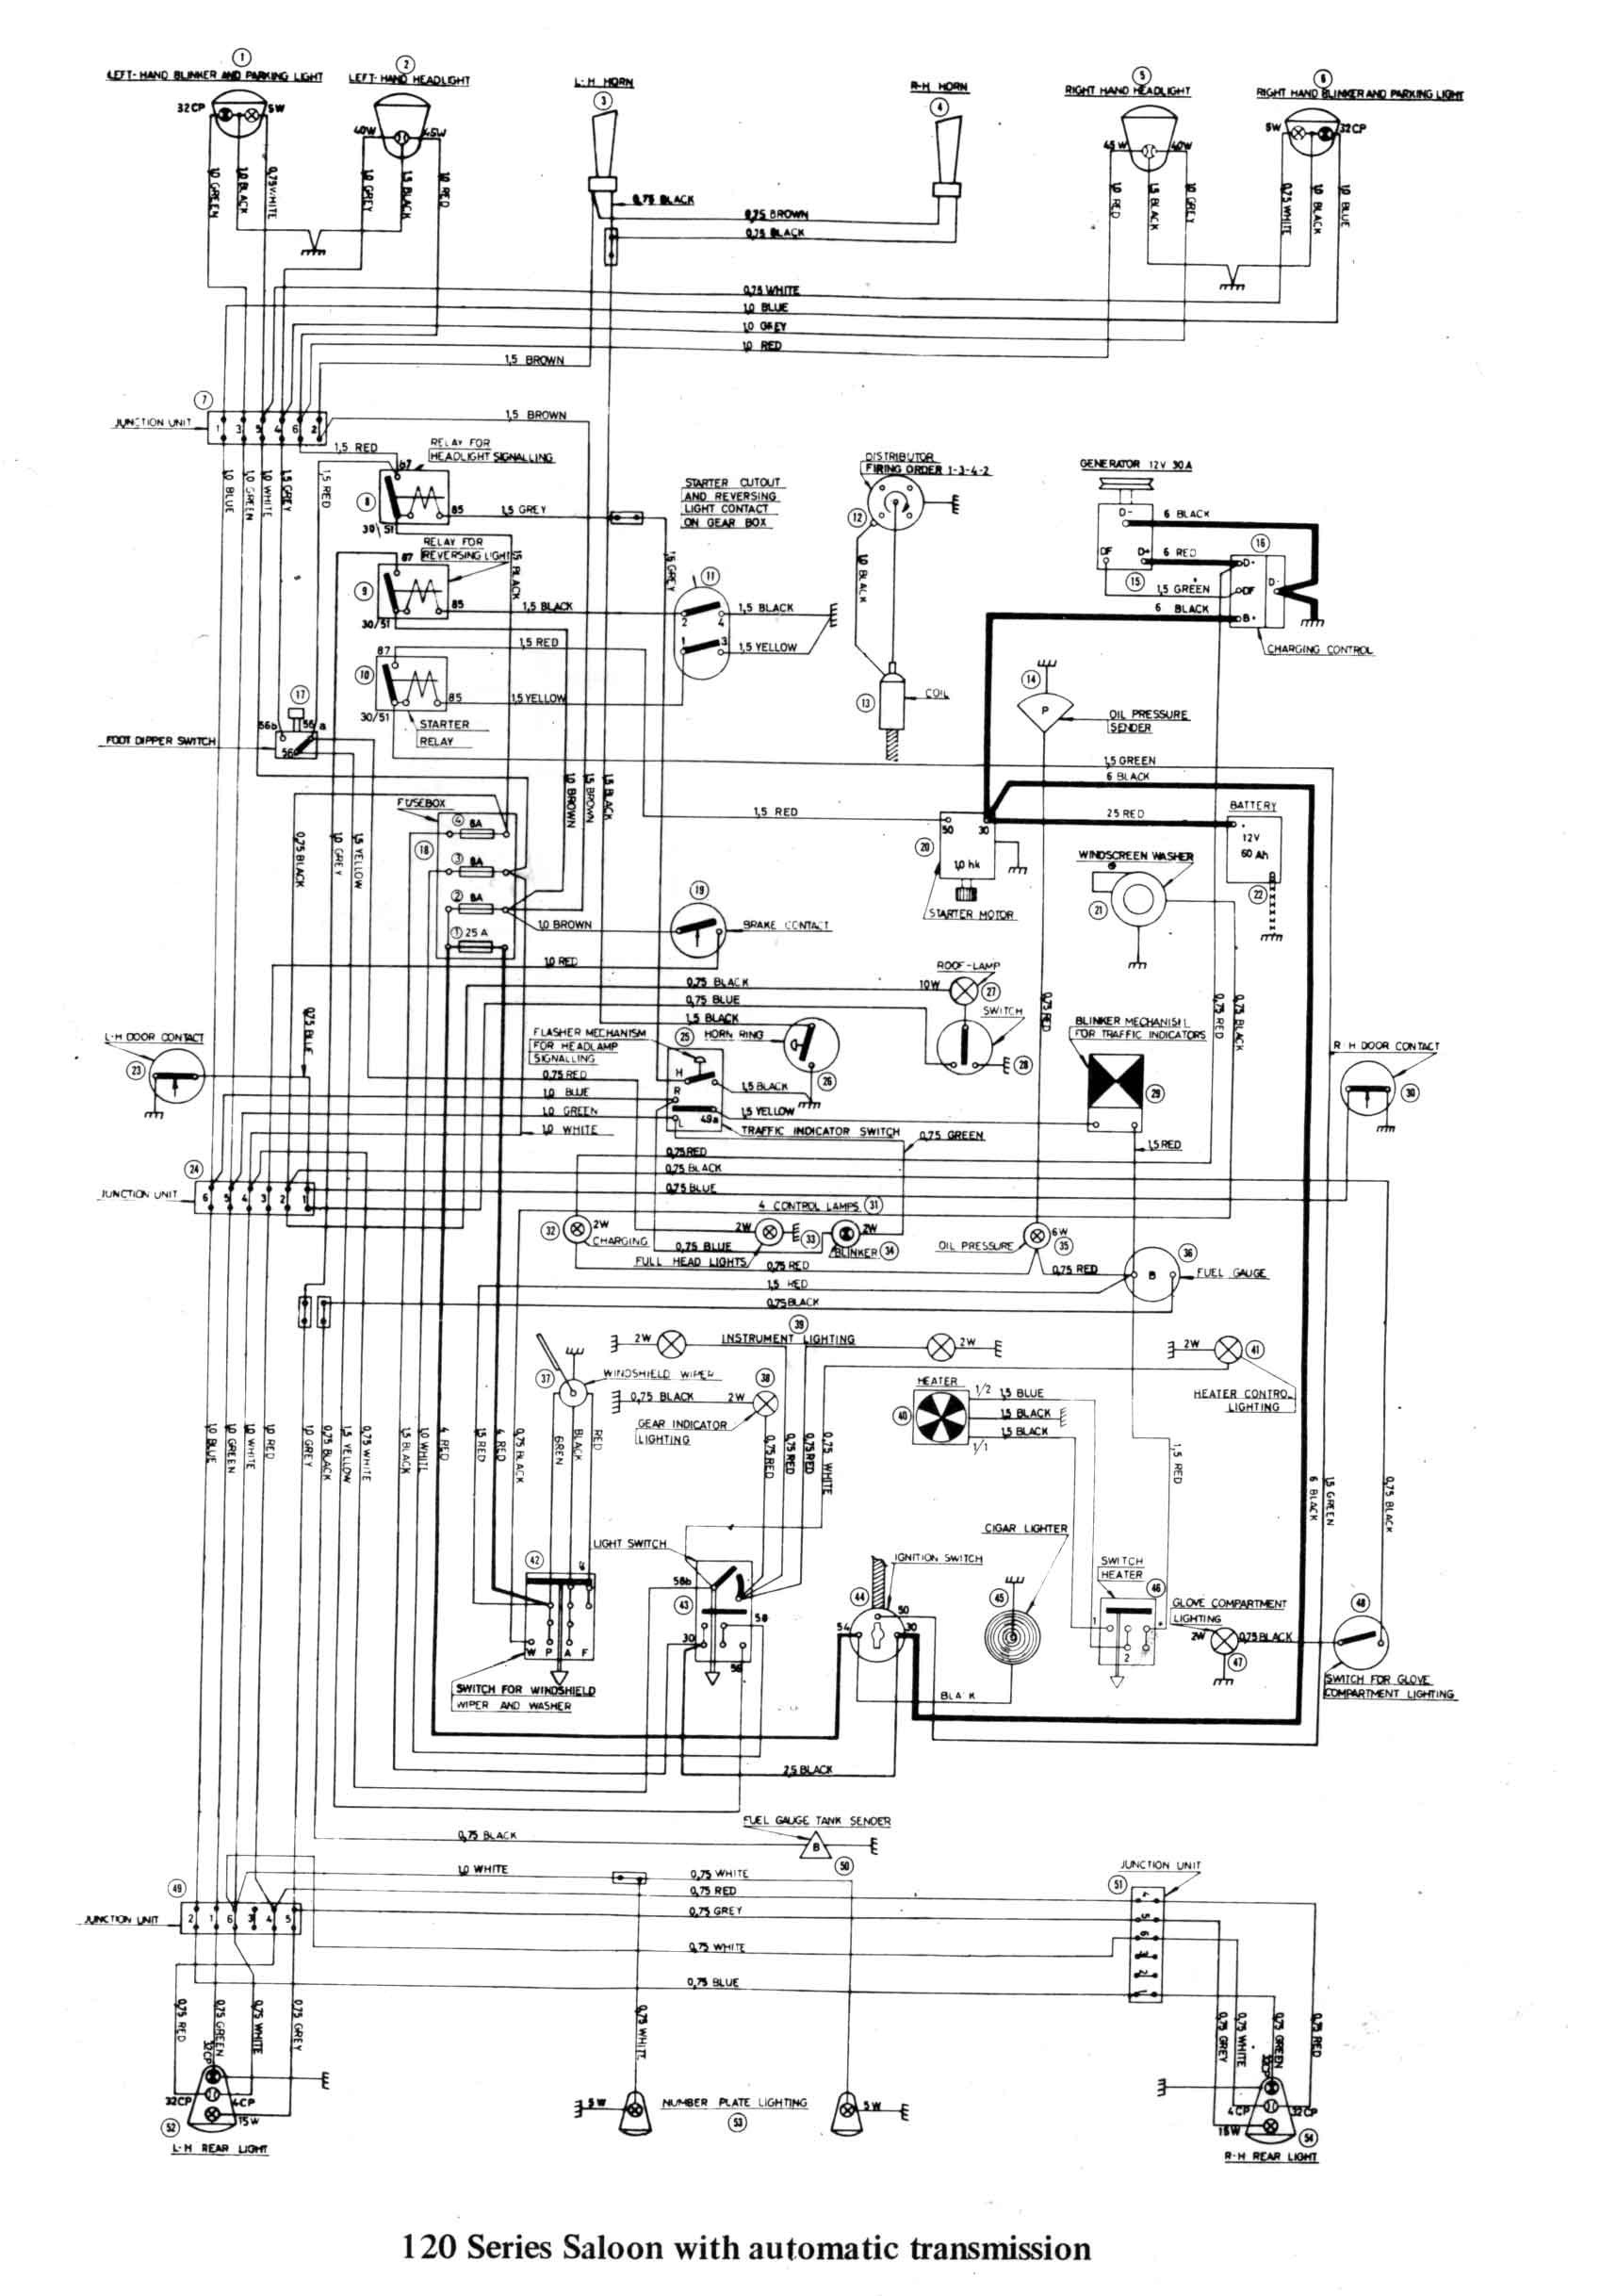 Tractor Trailer Wiring Diagram Beautiful Pollak Related Post